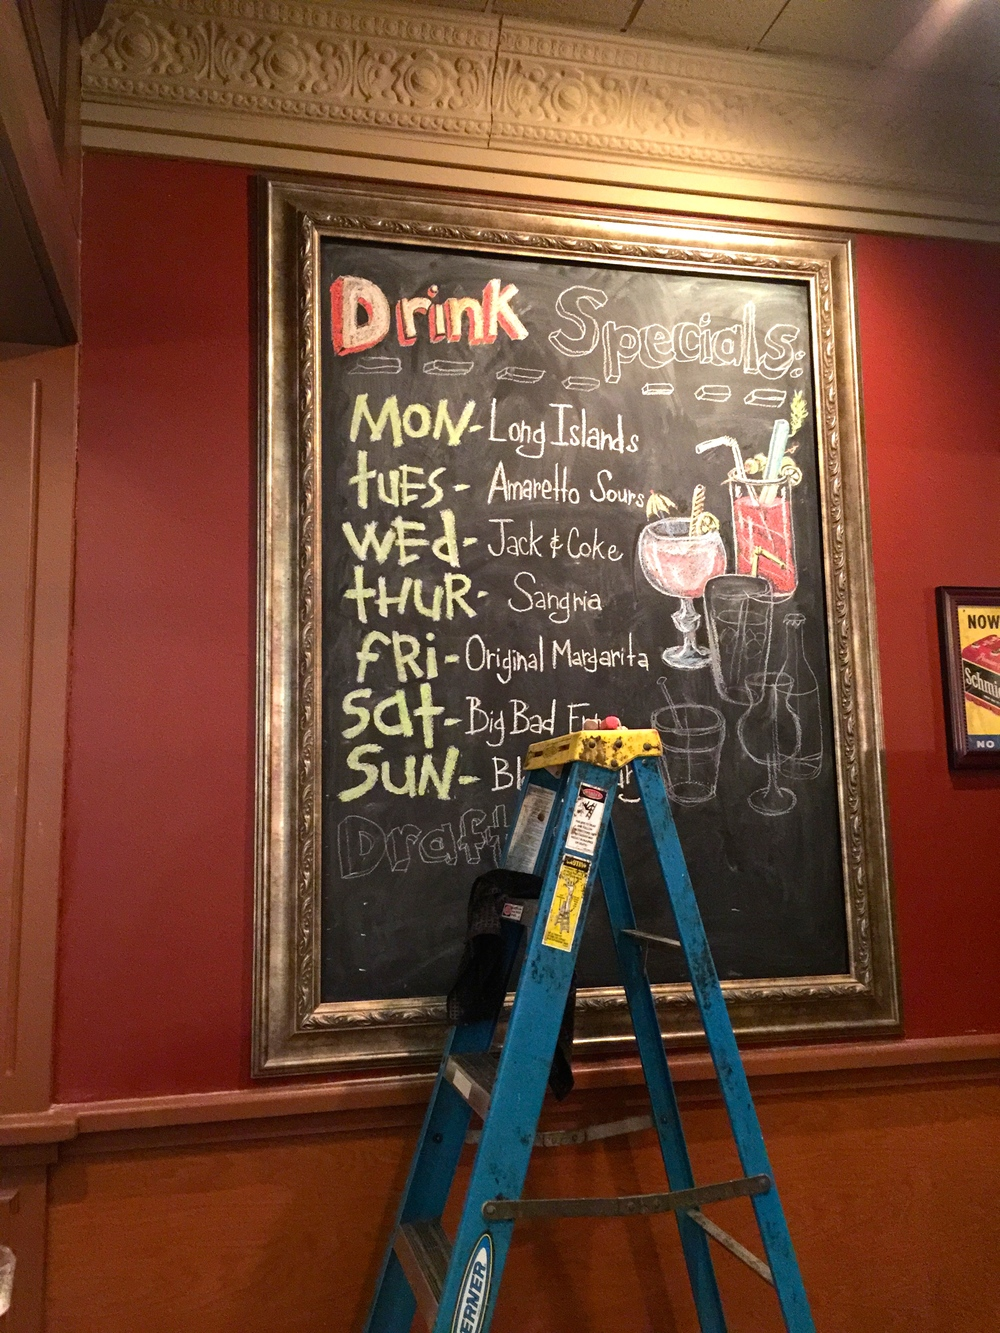 DrinkSign_ladder_progress.jpg